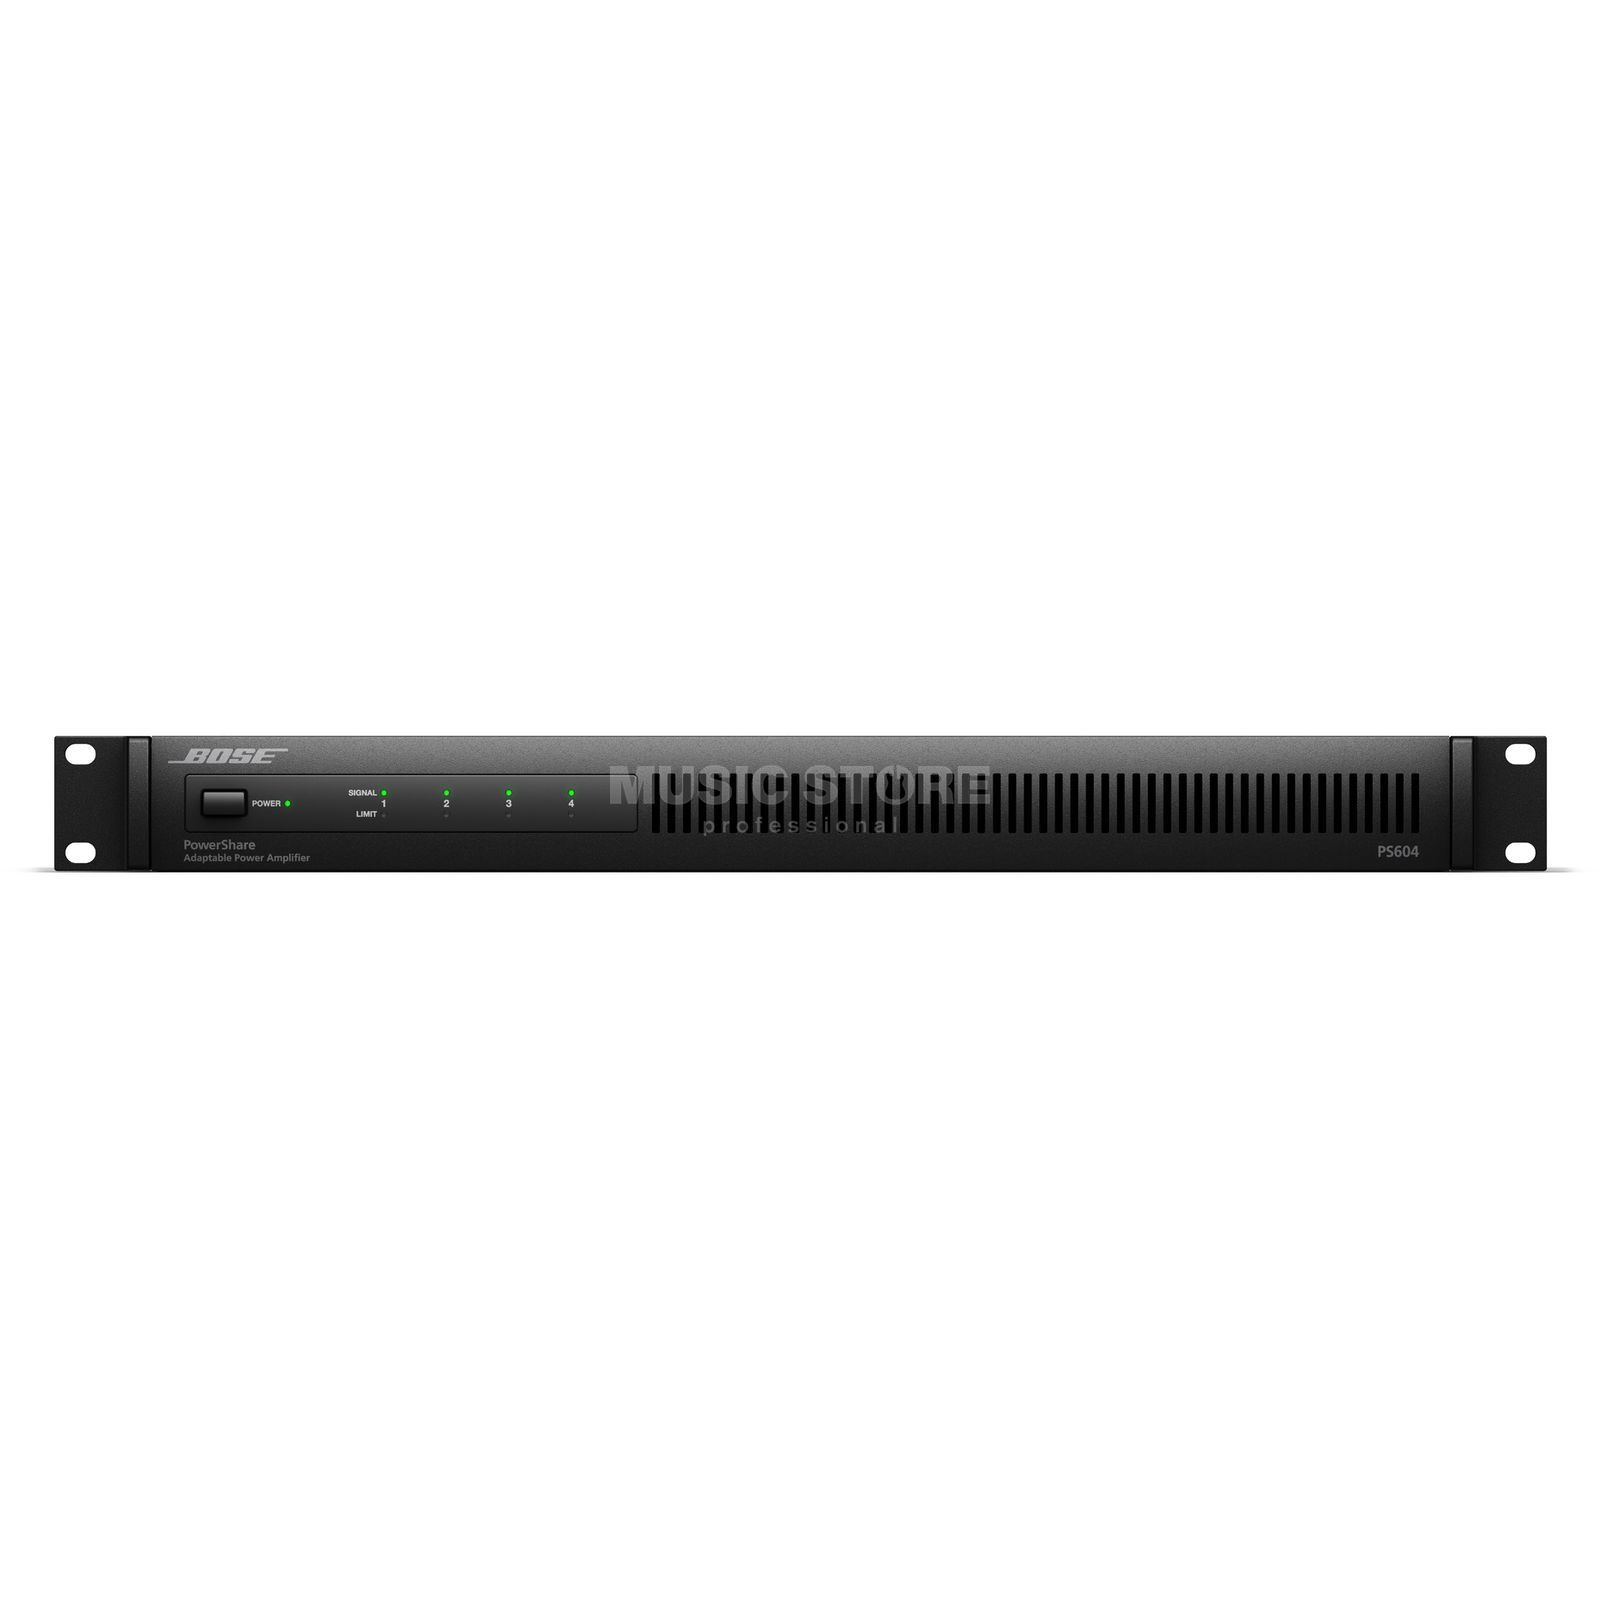 Bose PS 604 PowerShare Amplifier 600W, 4 Channels Produktbild